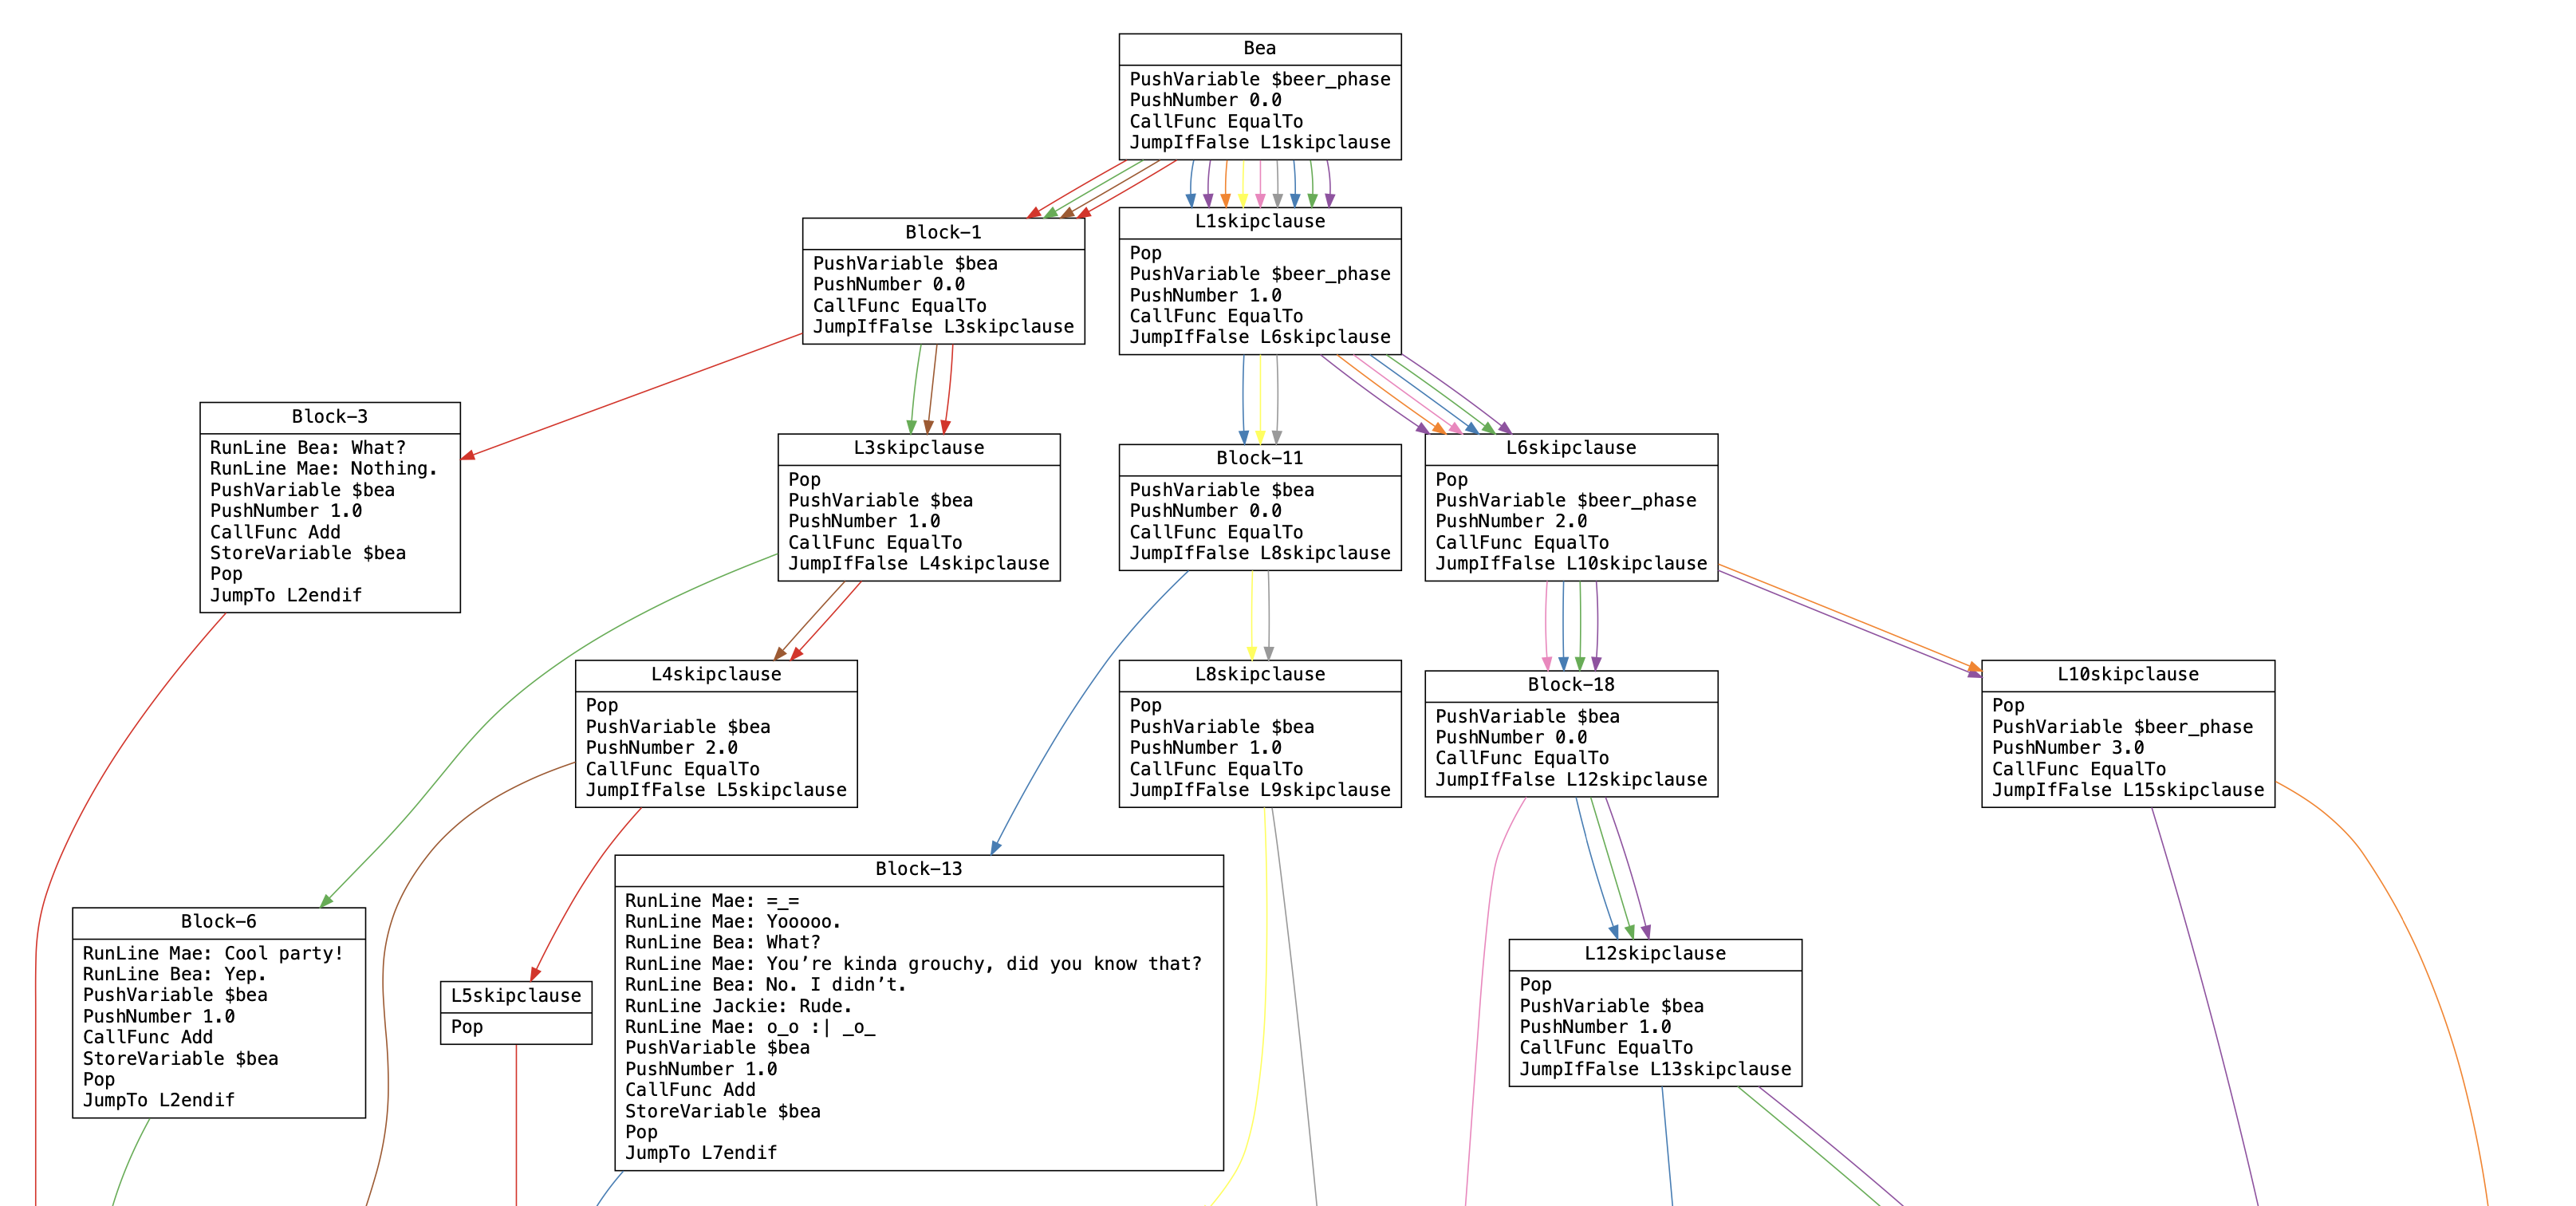 fig5-control-flow-graph.png